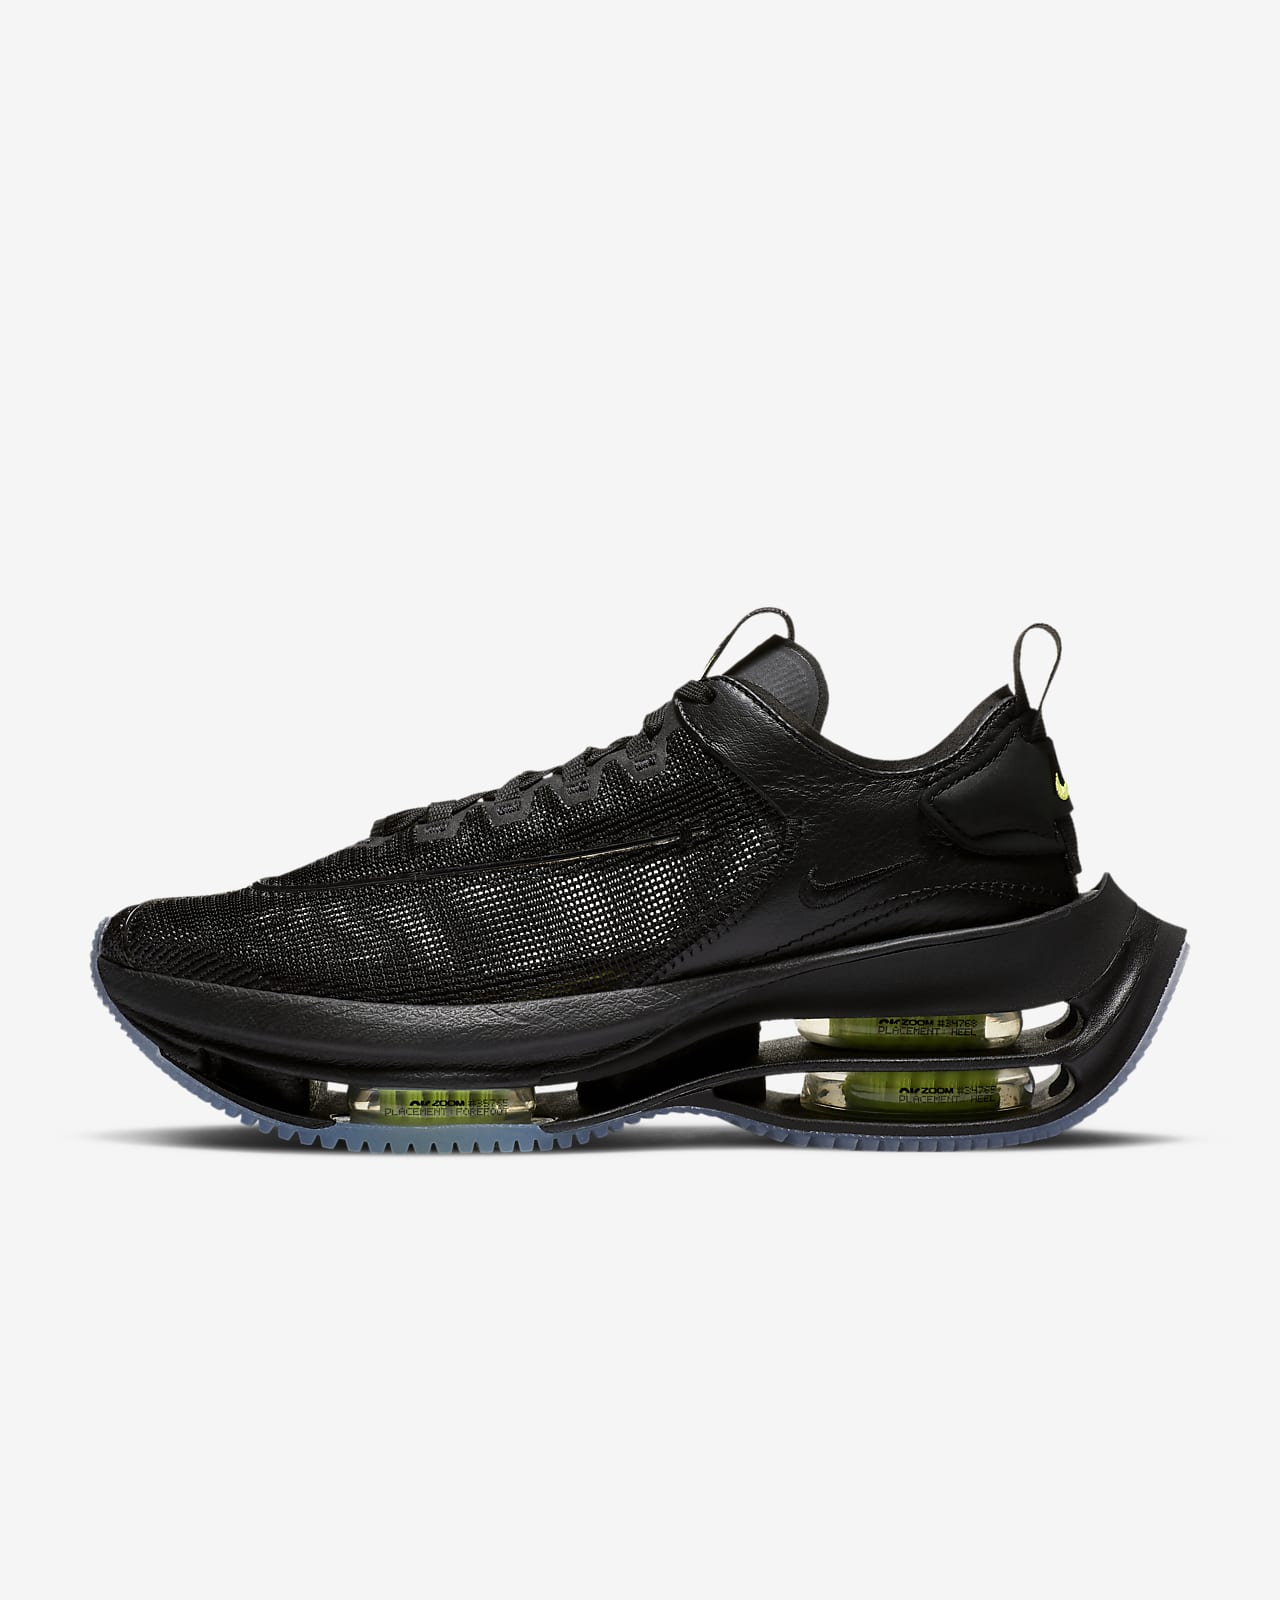 Chaussure Nike Zoom Double Stacked pour Femme